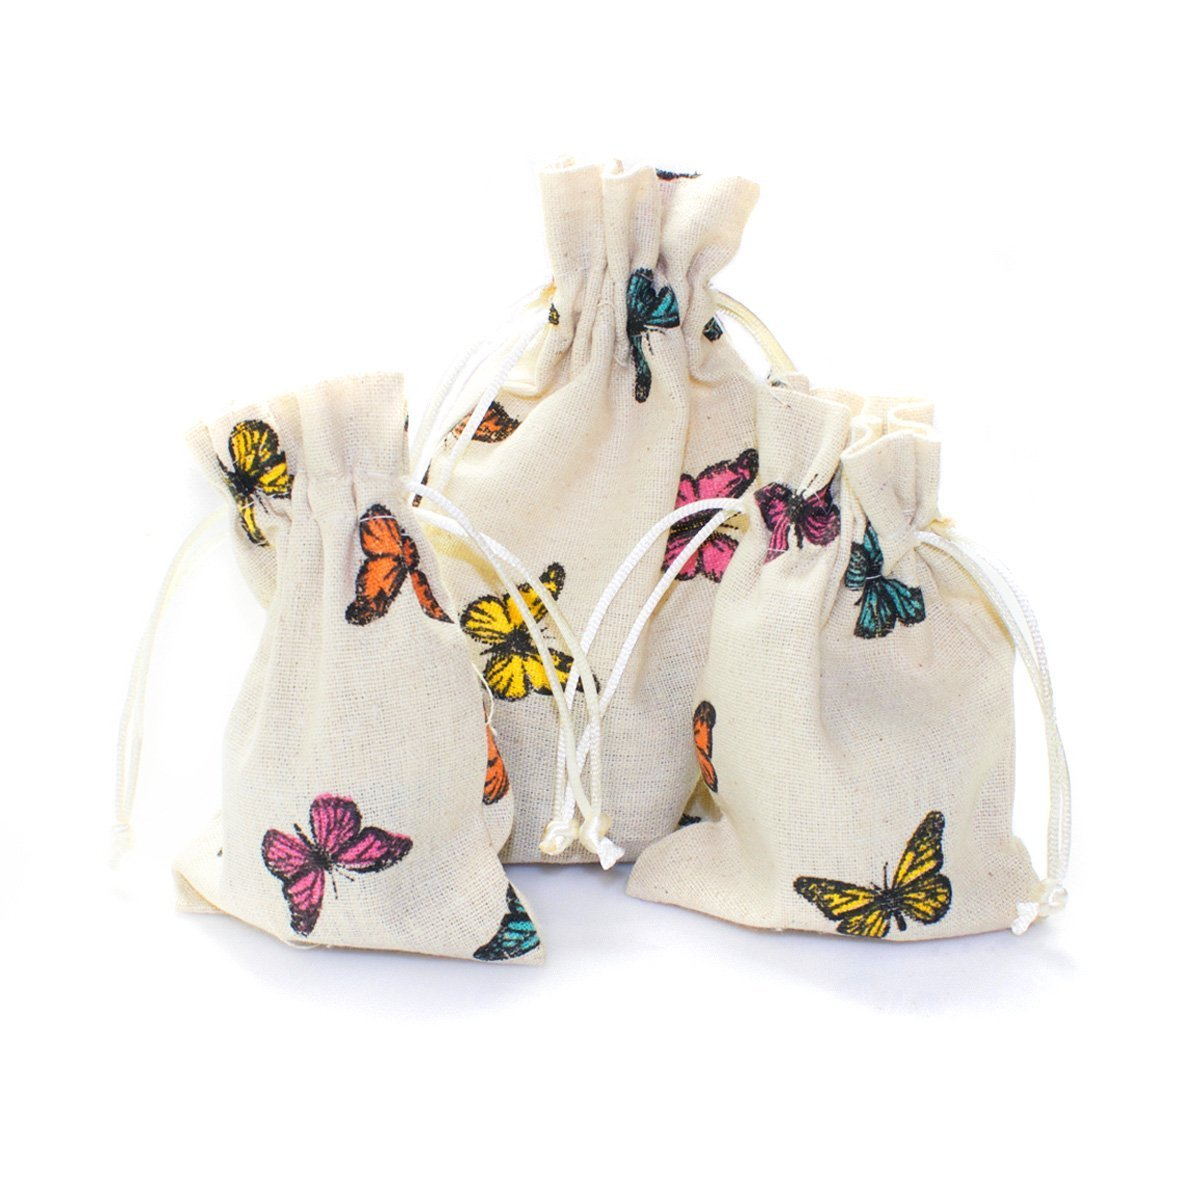 Linen and Bags 4'' x 6'' Drawstring Butterfly Linen Favor Bag Pouches with Nylon Cord for Party Favors, Crafts, and Gifts 25 Bags